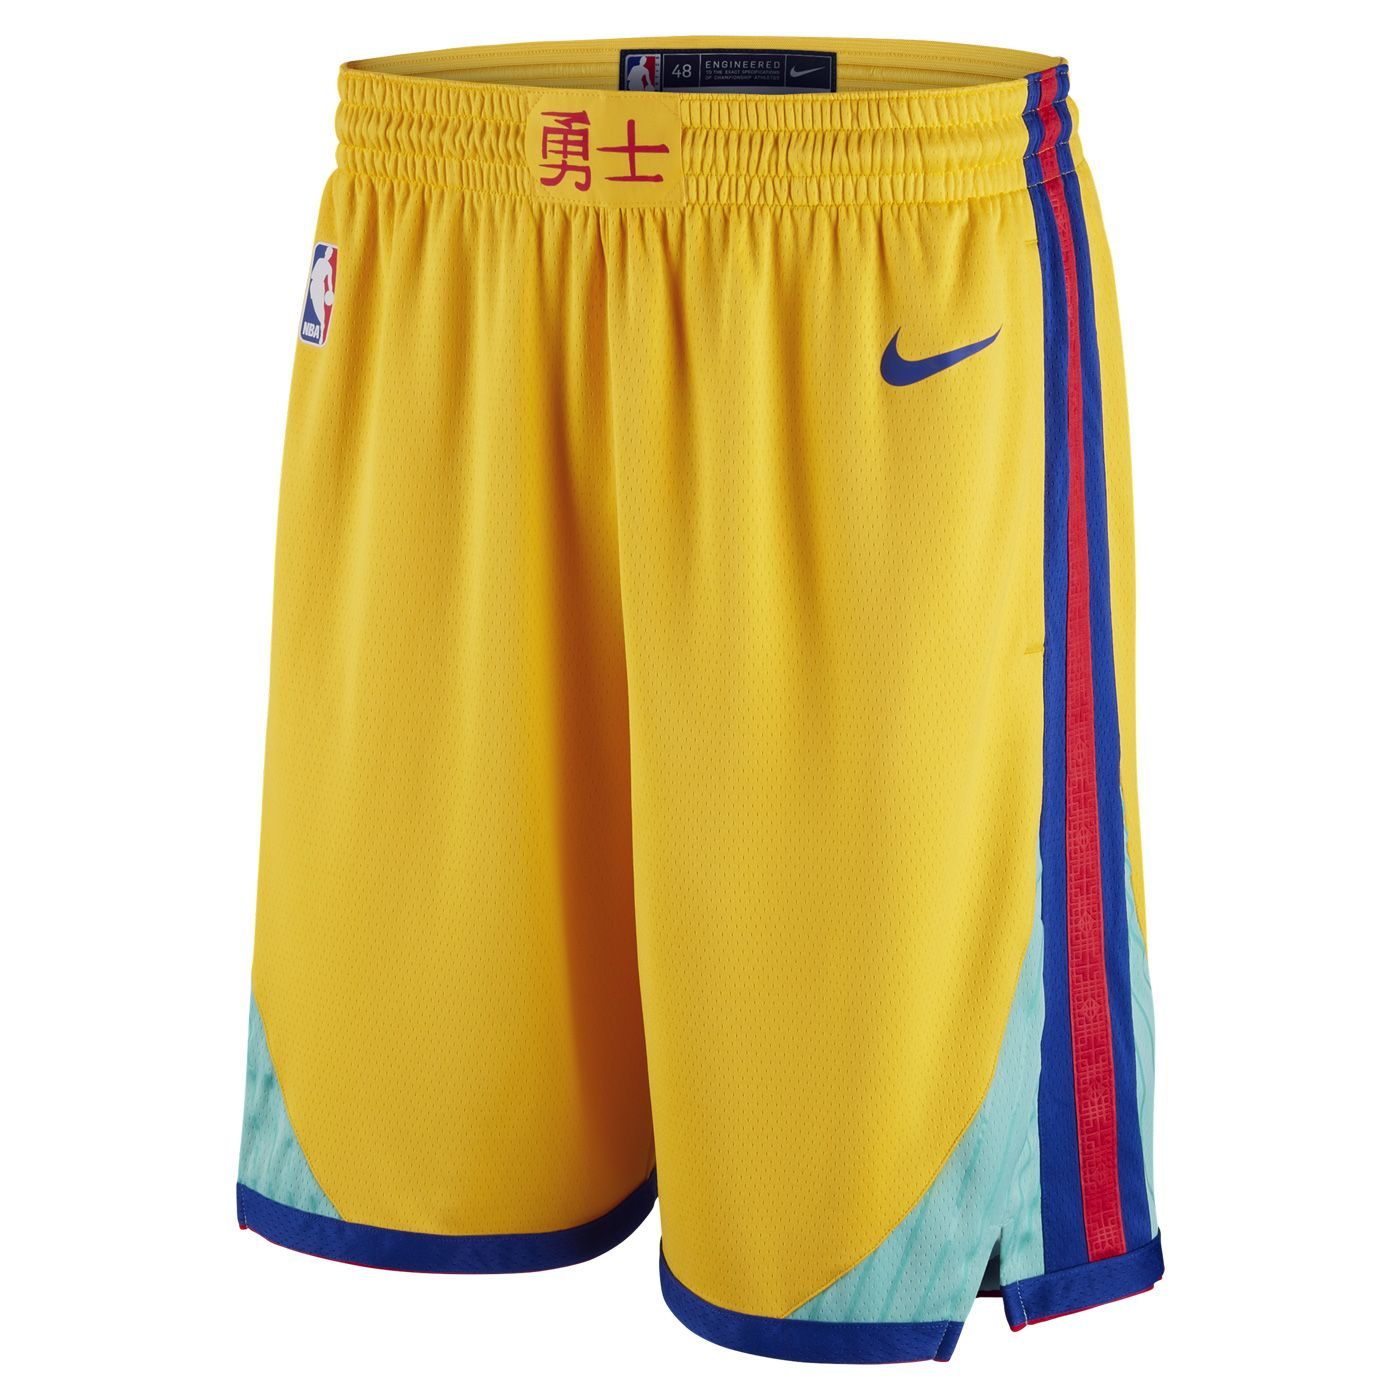 293d36dbfeaa Golden State Warriors Nike Dri-FIT Men s Chinese Heritage City Edition  Swingman Short - Gold